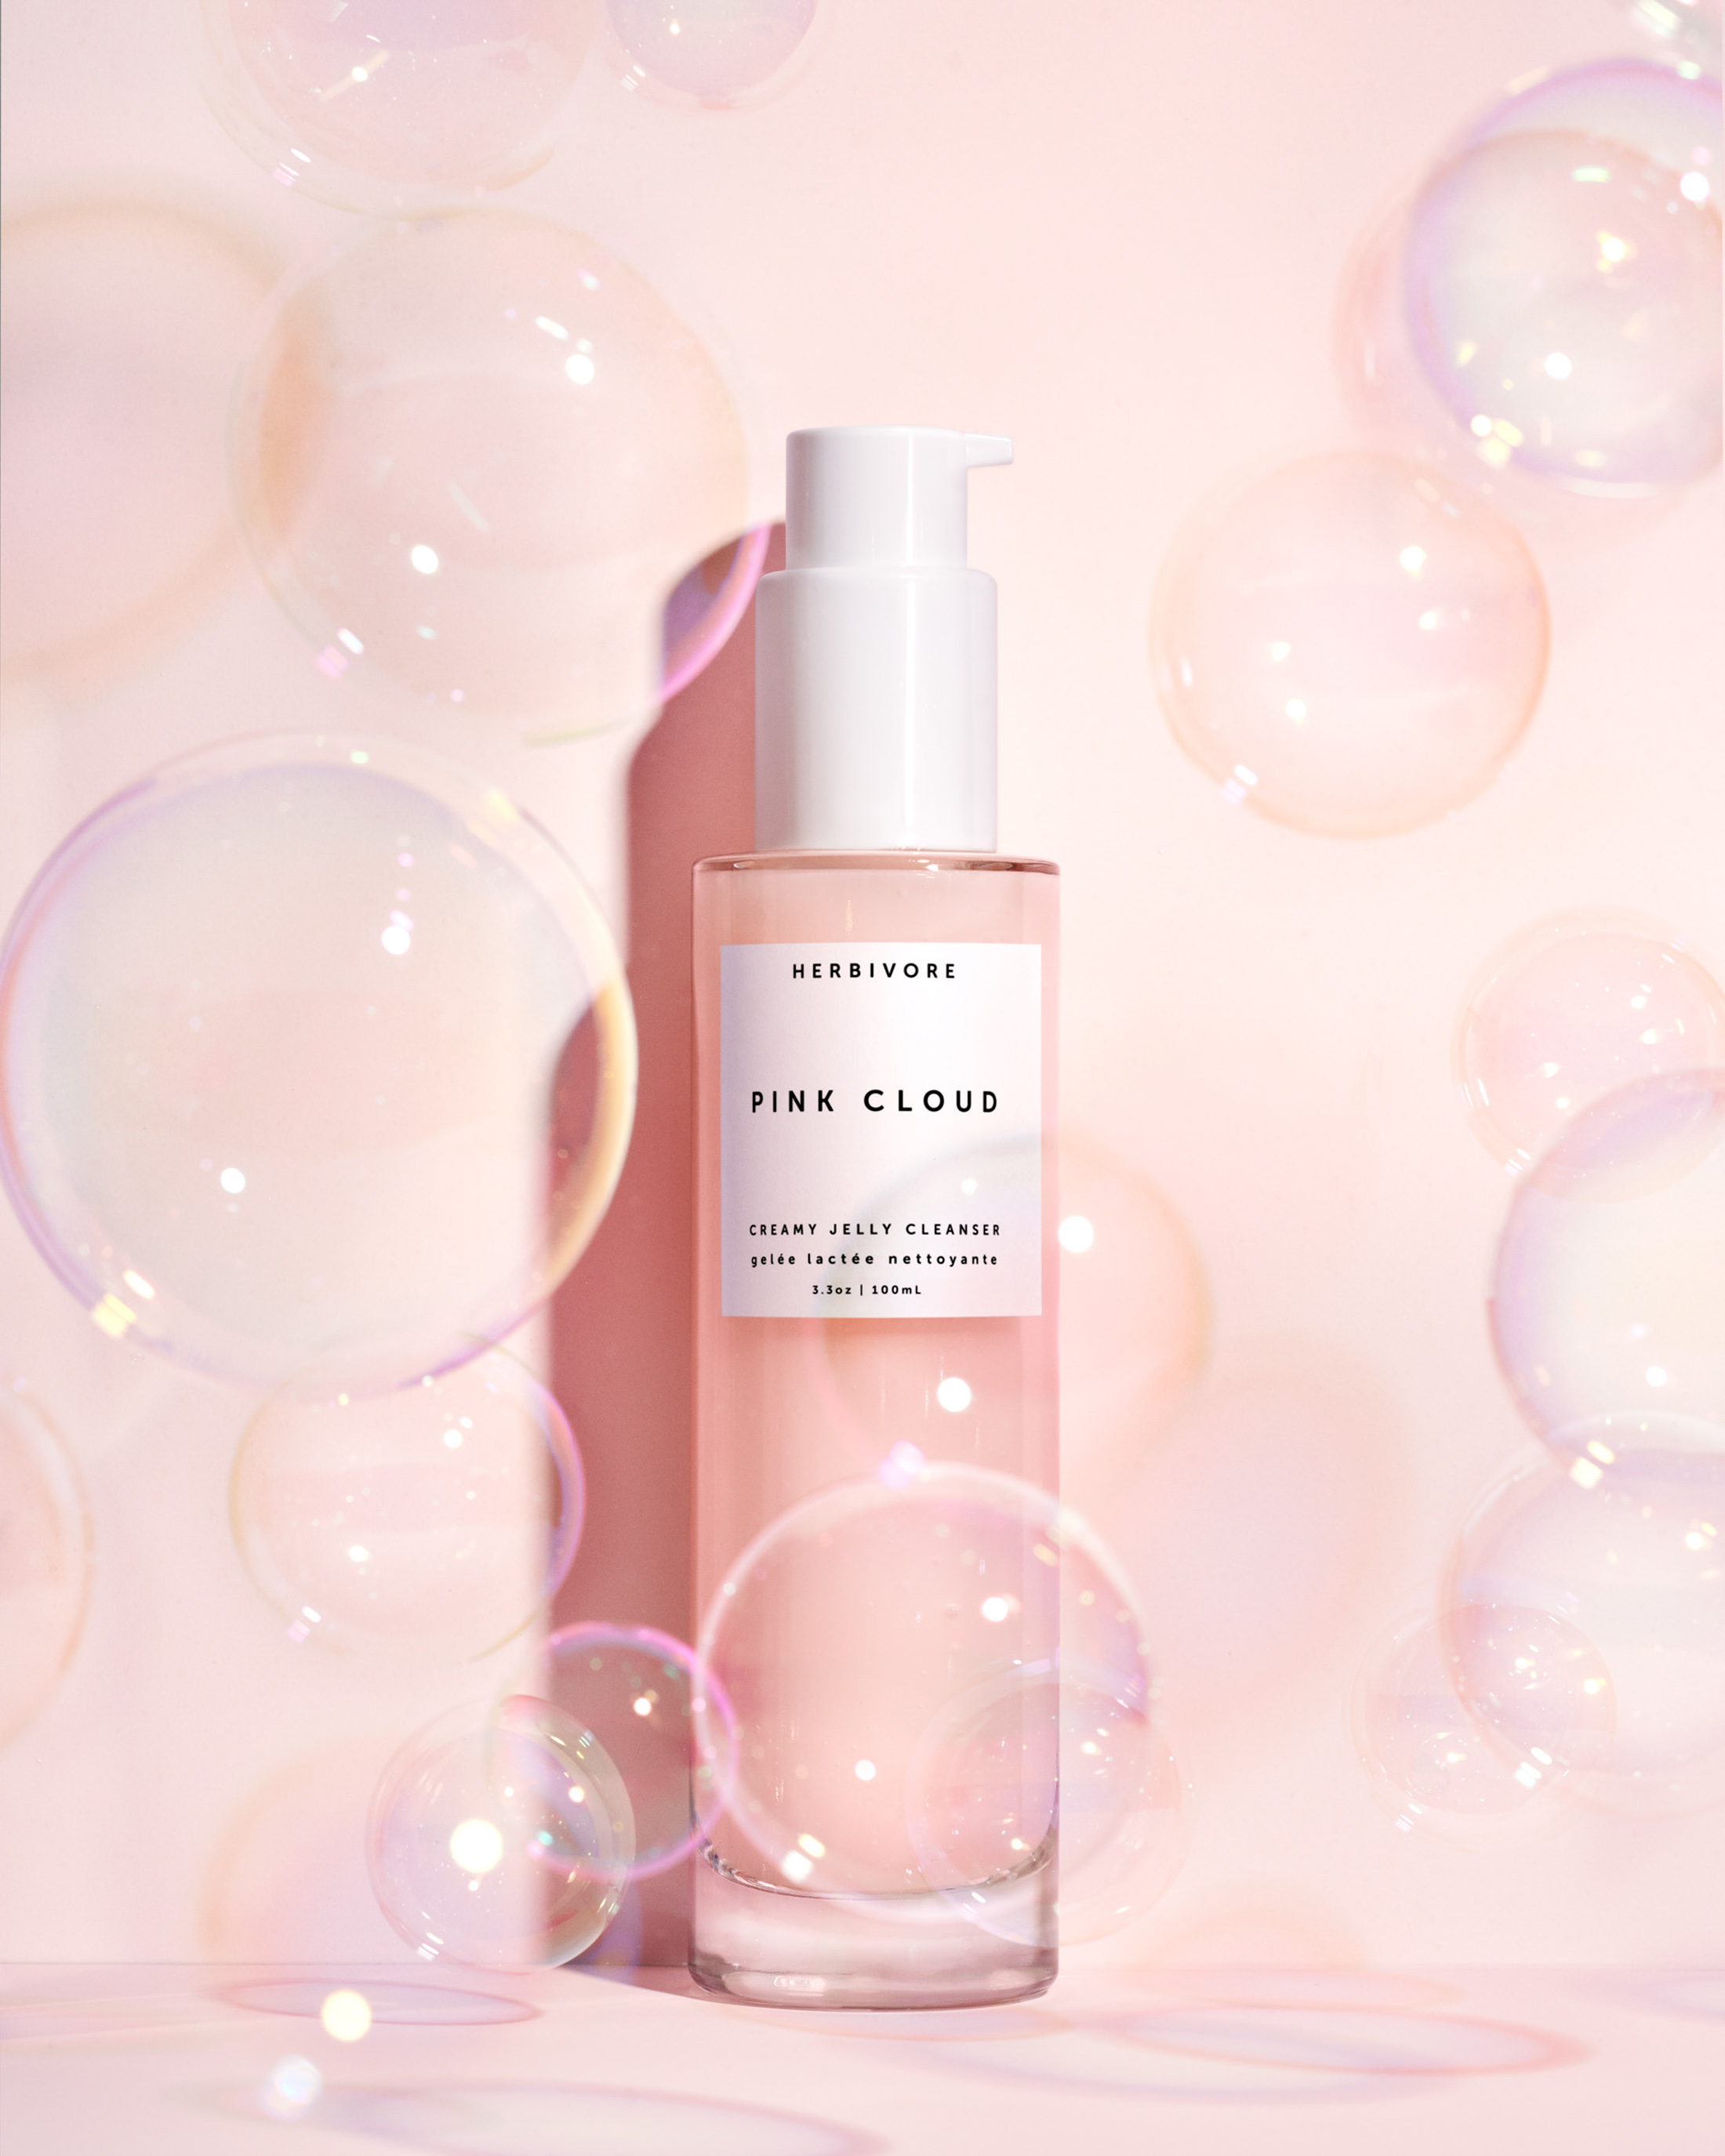 STAN_HERBIVORE_PINK_CLOUD_CLEANSER_SINGLE_WITH_BUBBLES.JPG